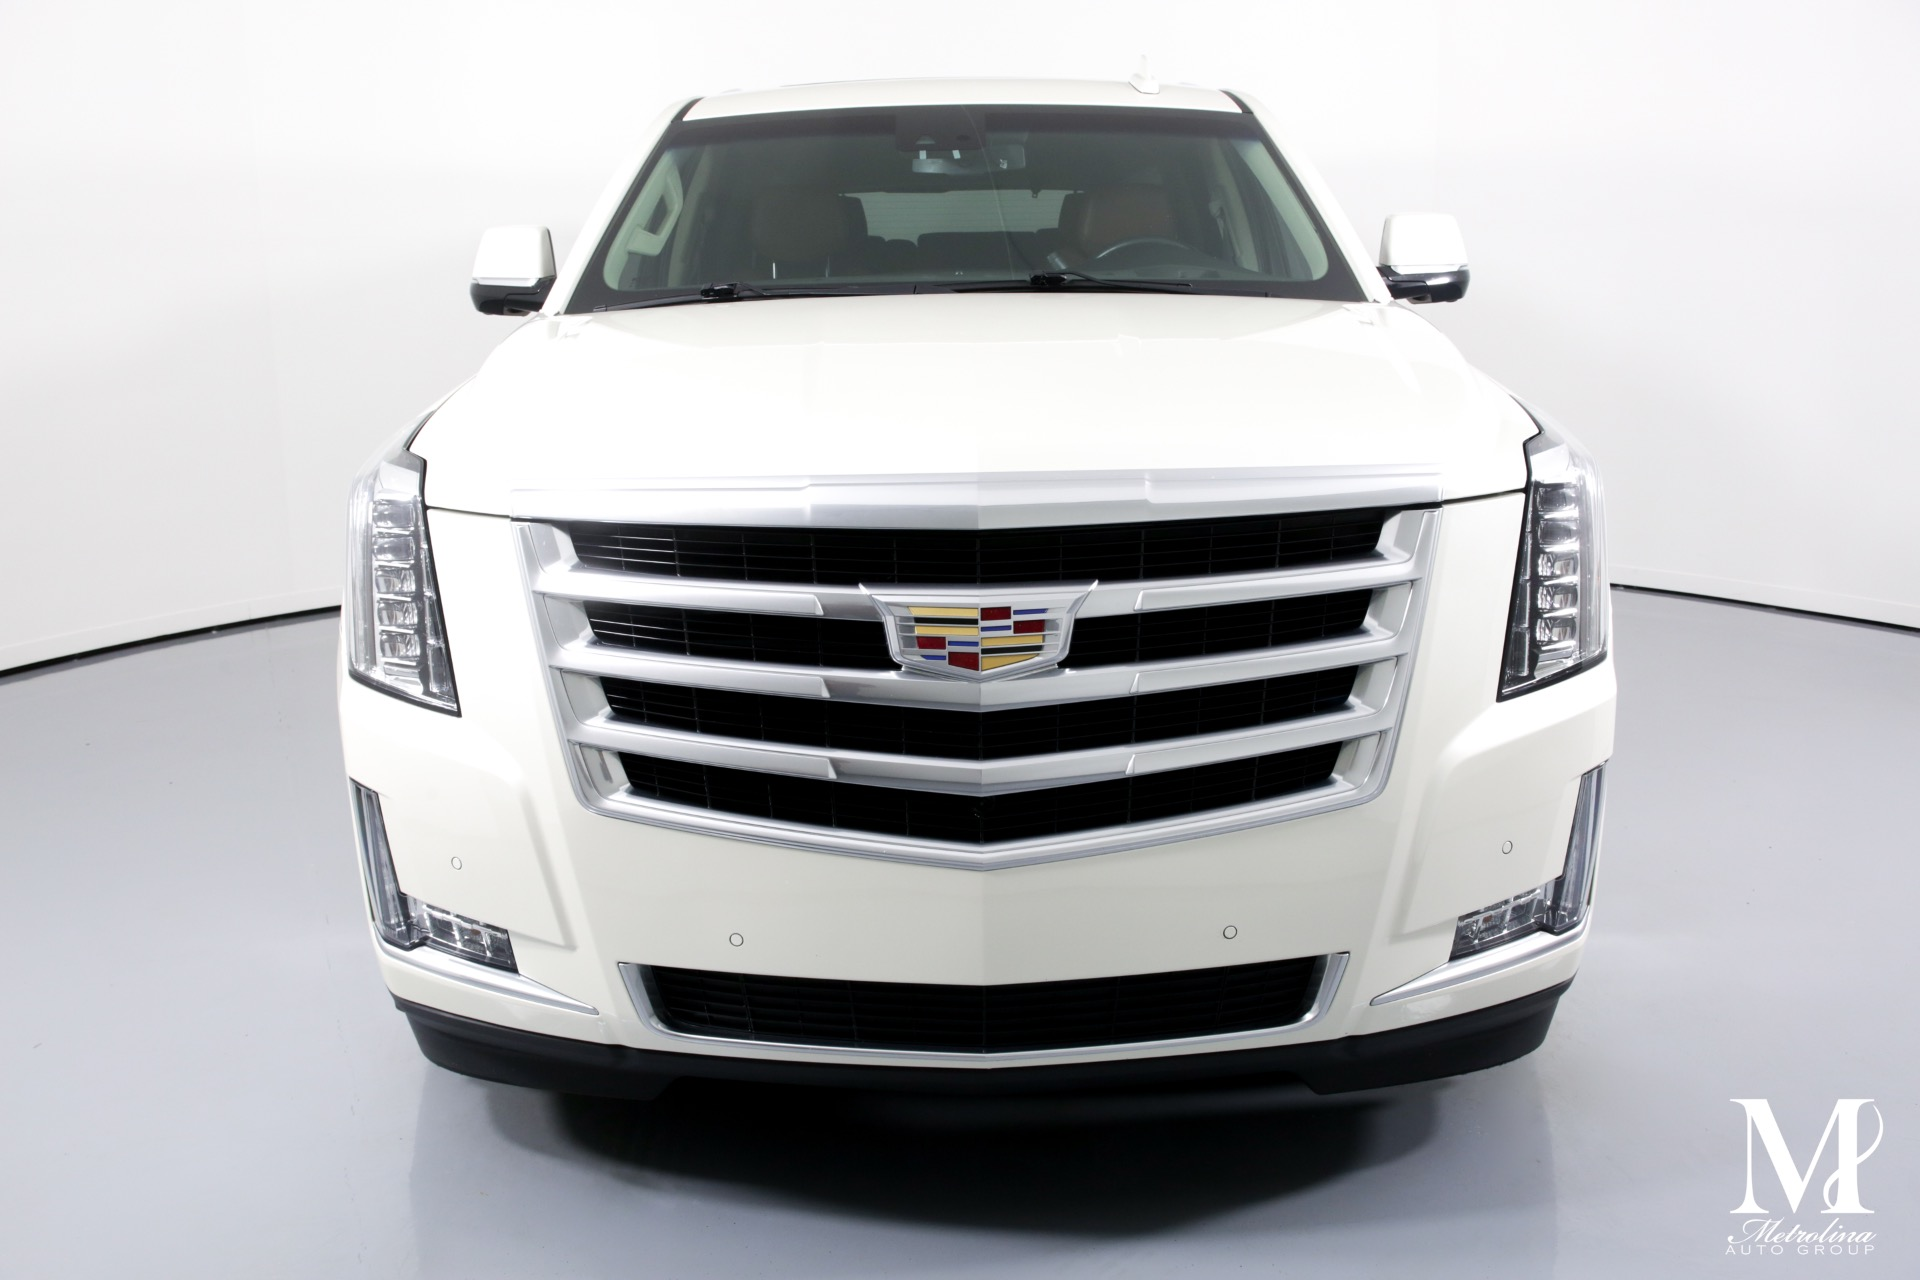 Used 2015 Cadillac Escalade Luxury for sale $49,996 at Metrolina Auto Group in Charlotte NC 28217 - 3